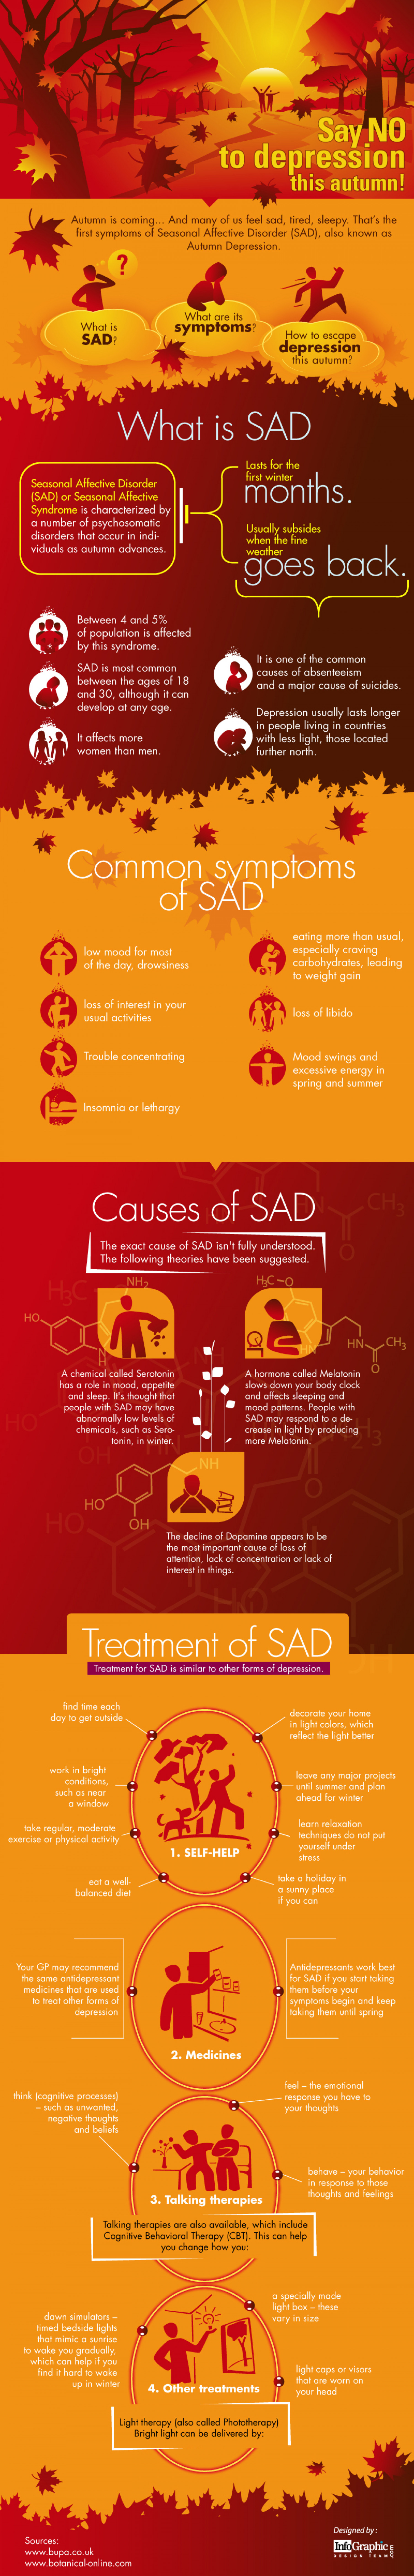 Say NO to depression this autumn! Infographic